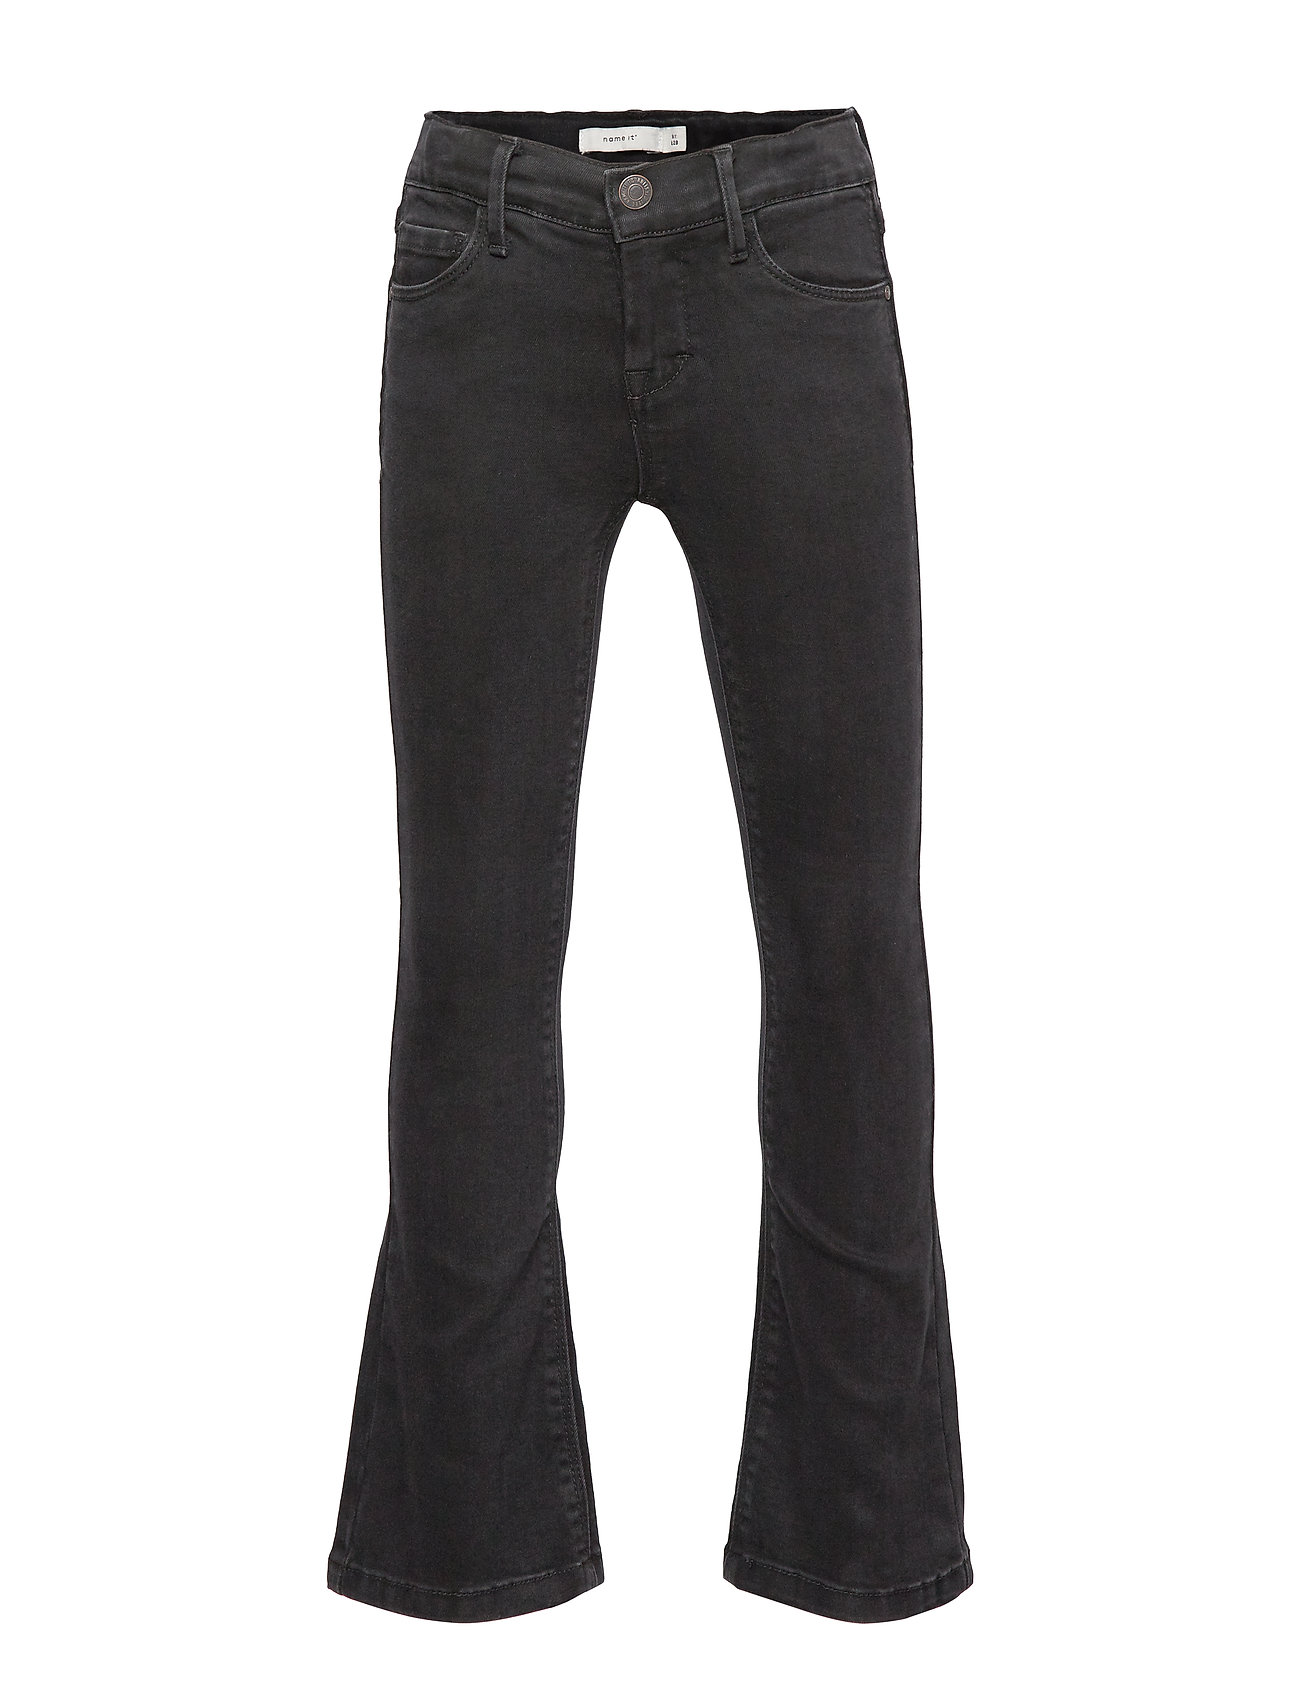 name it NKFABECKY DNM 7278 BOOTCUT PANT - BLACK DENIM